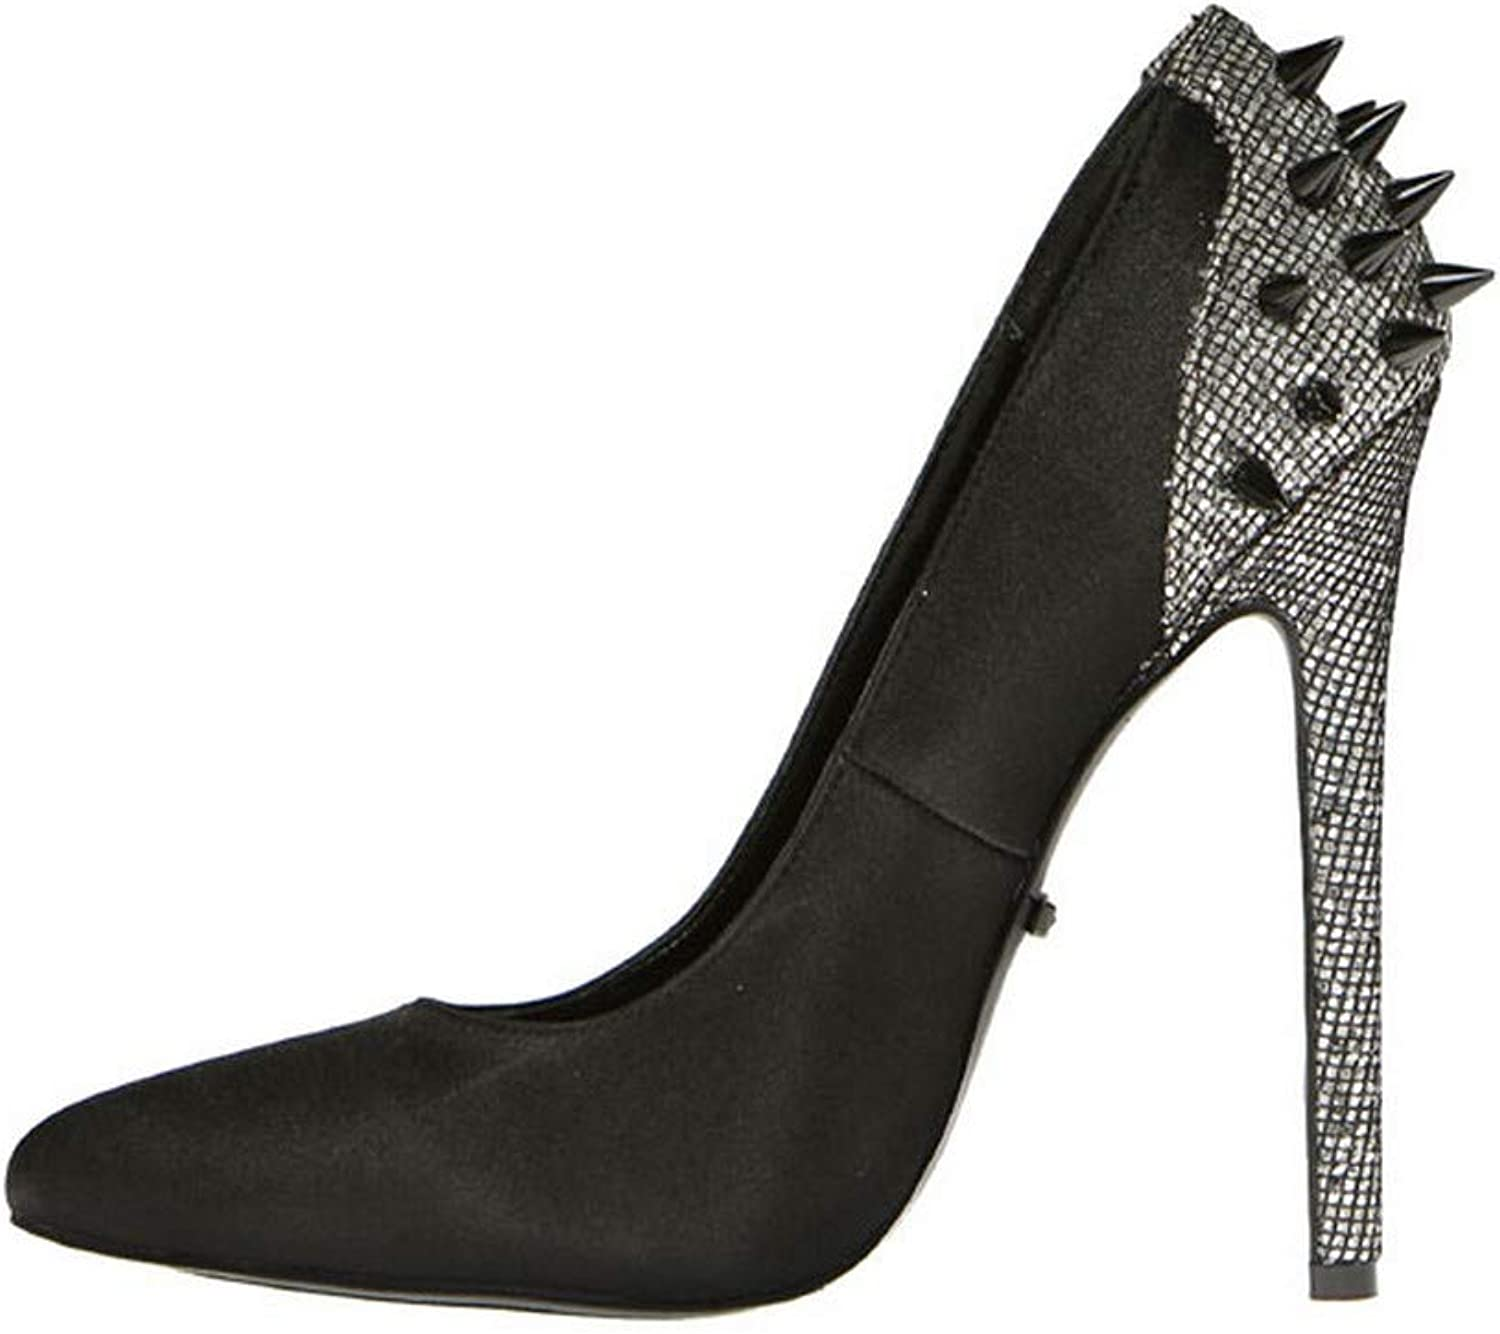 Pointed Toe Special price We OFFer at cheap prices for a limited time Rear Spike Sexy - 5.25